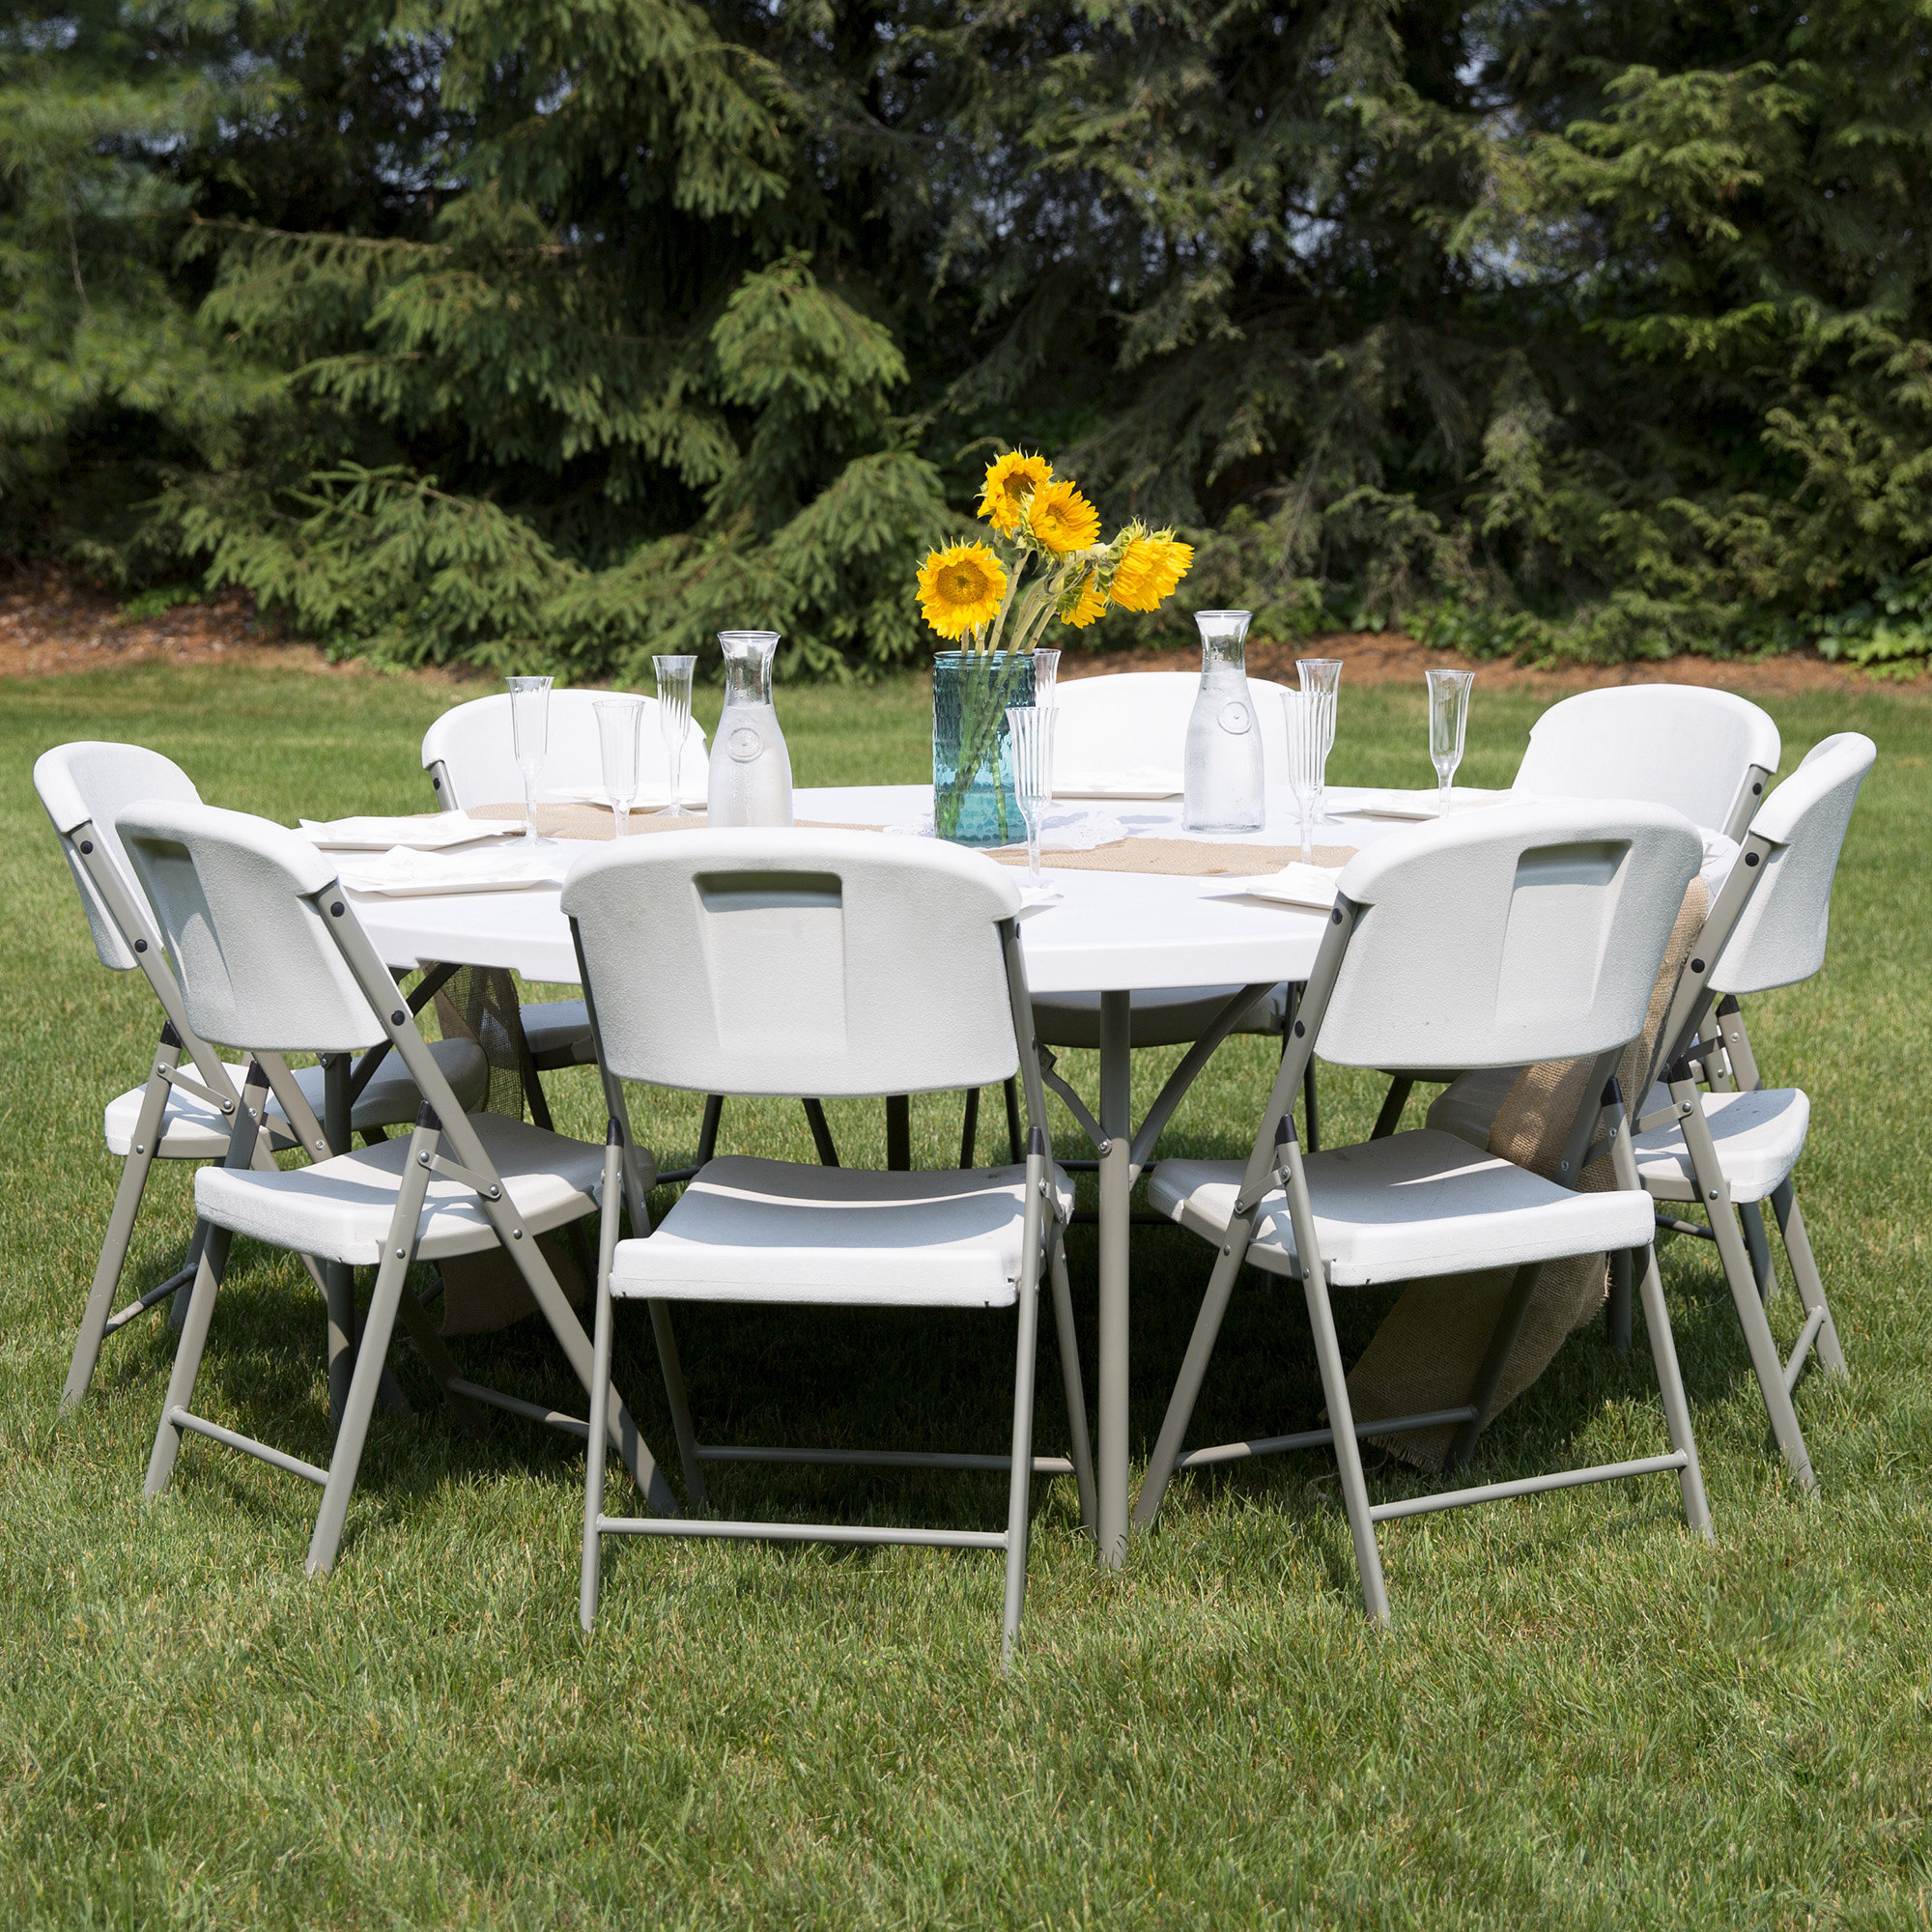 Chair and table rentals table and chair rental in dallas for Table and chair rentals